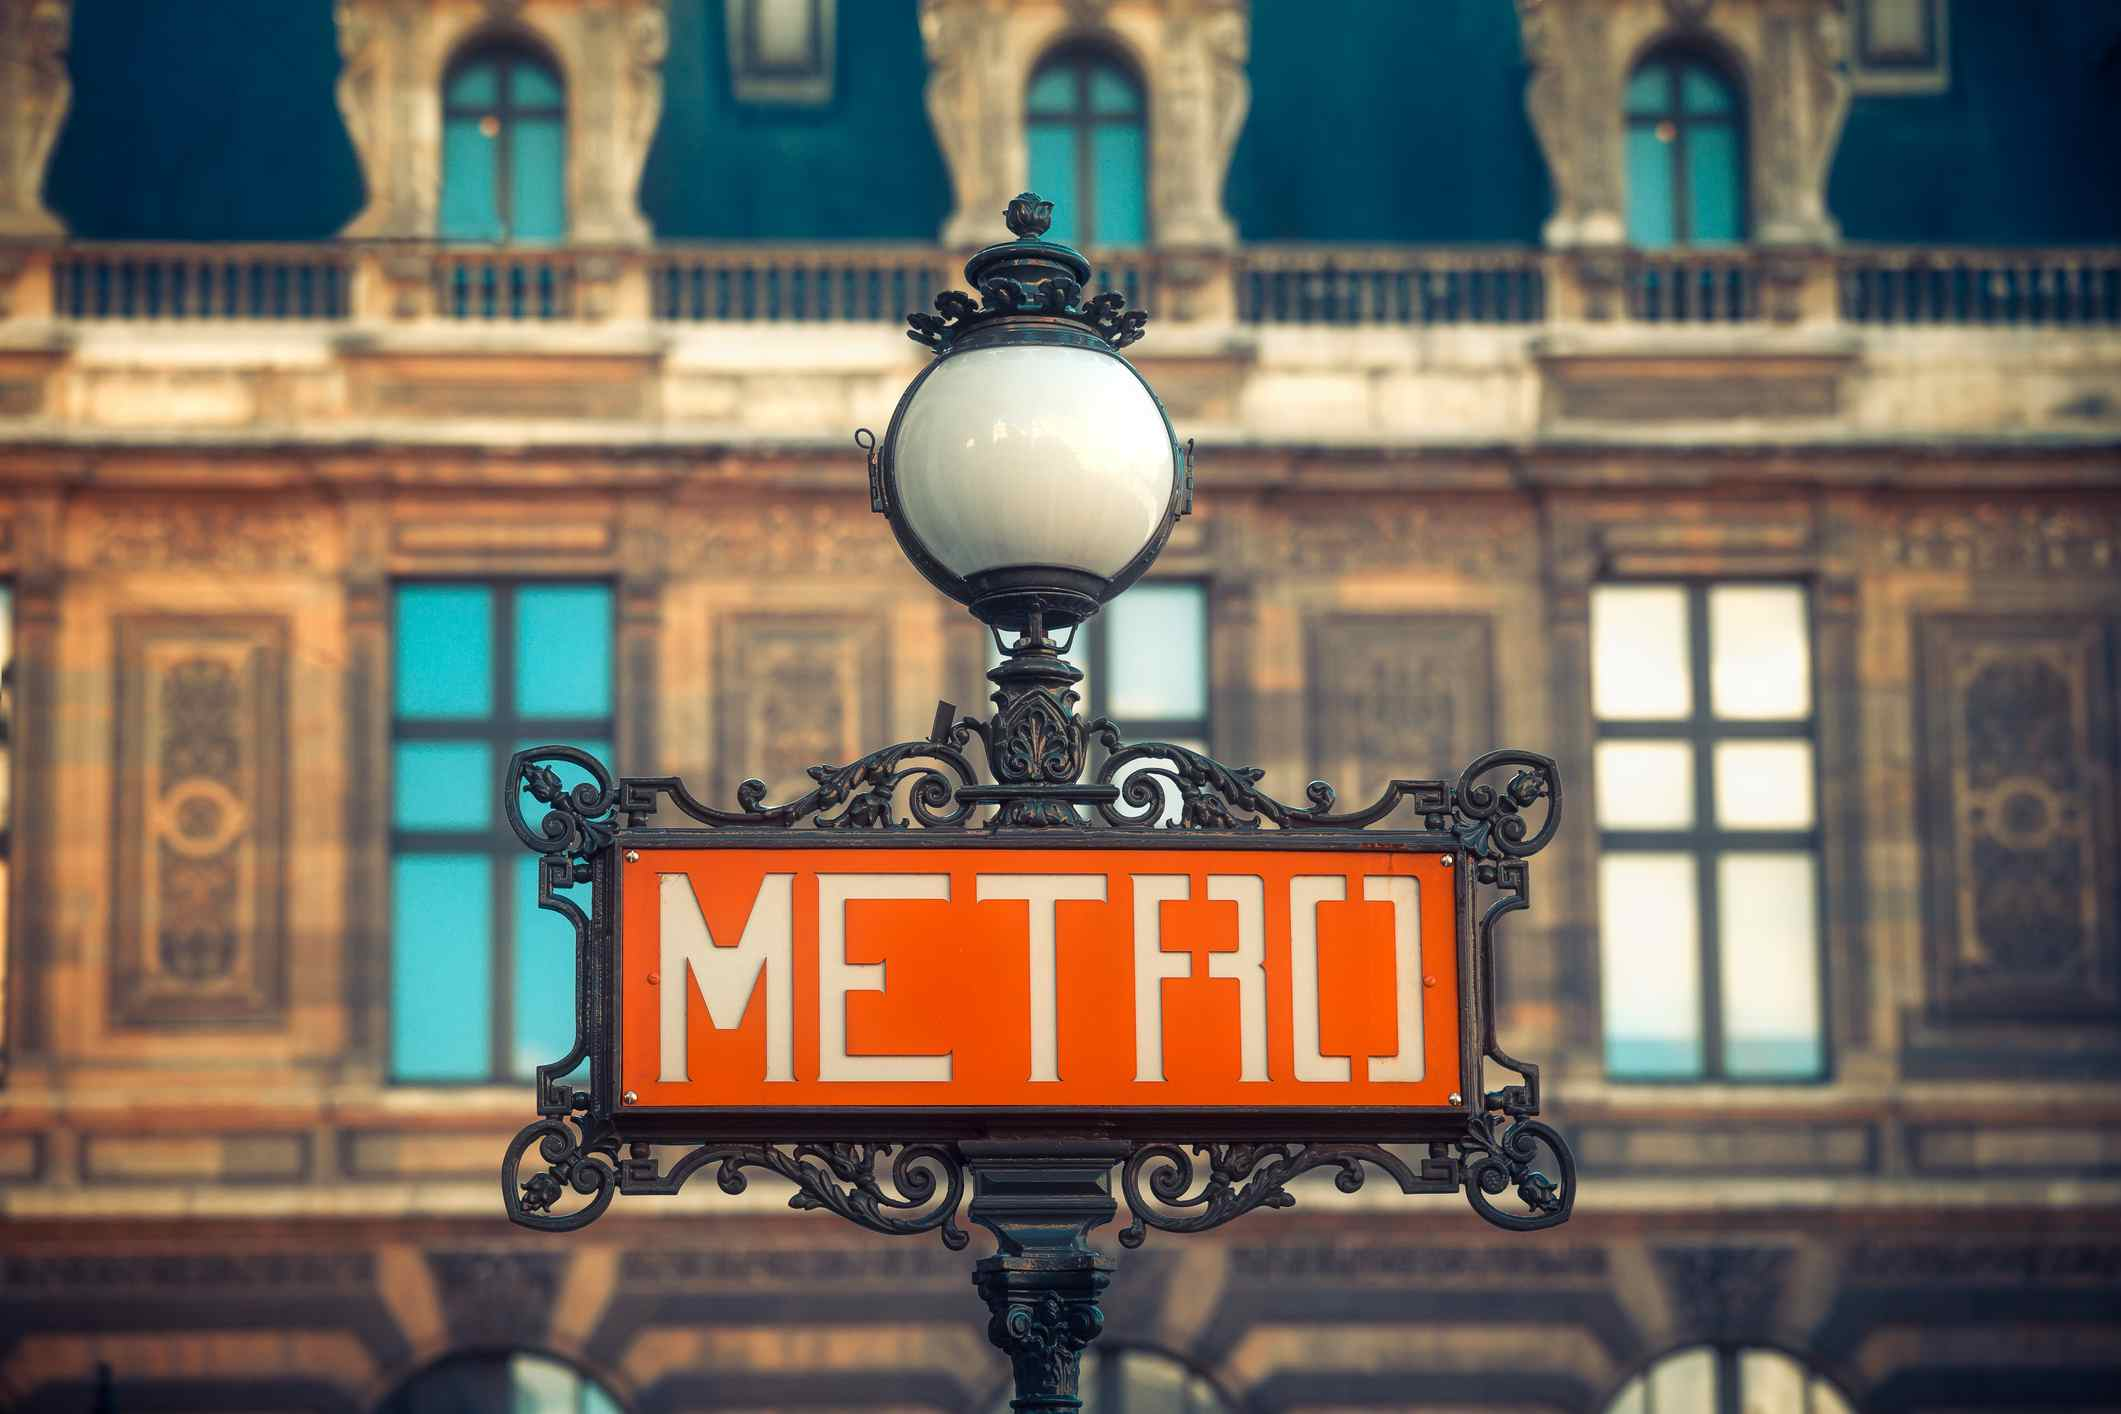 Where to buy tickets for the Paris metro?